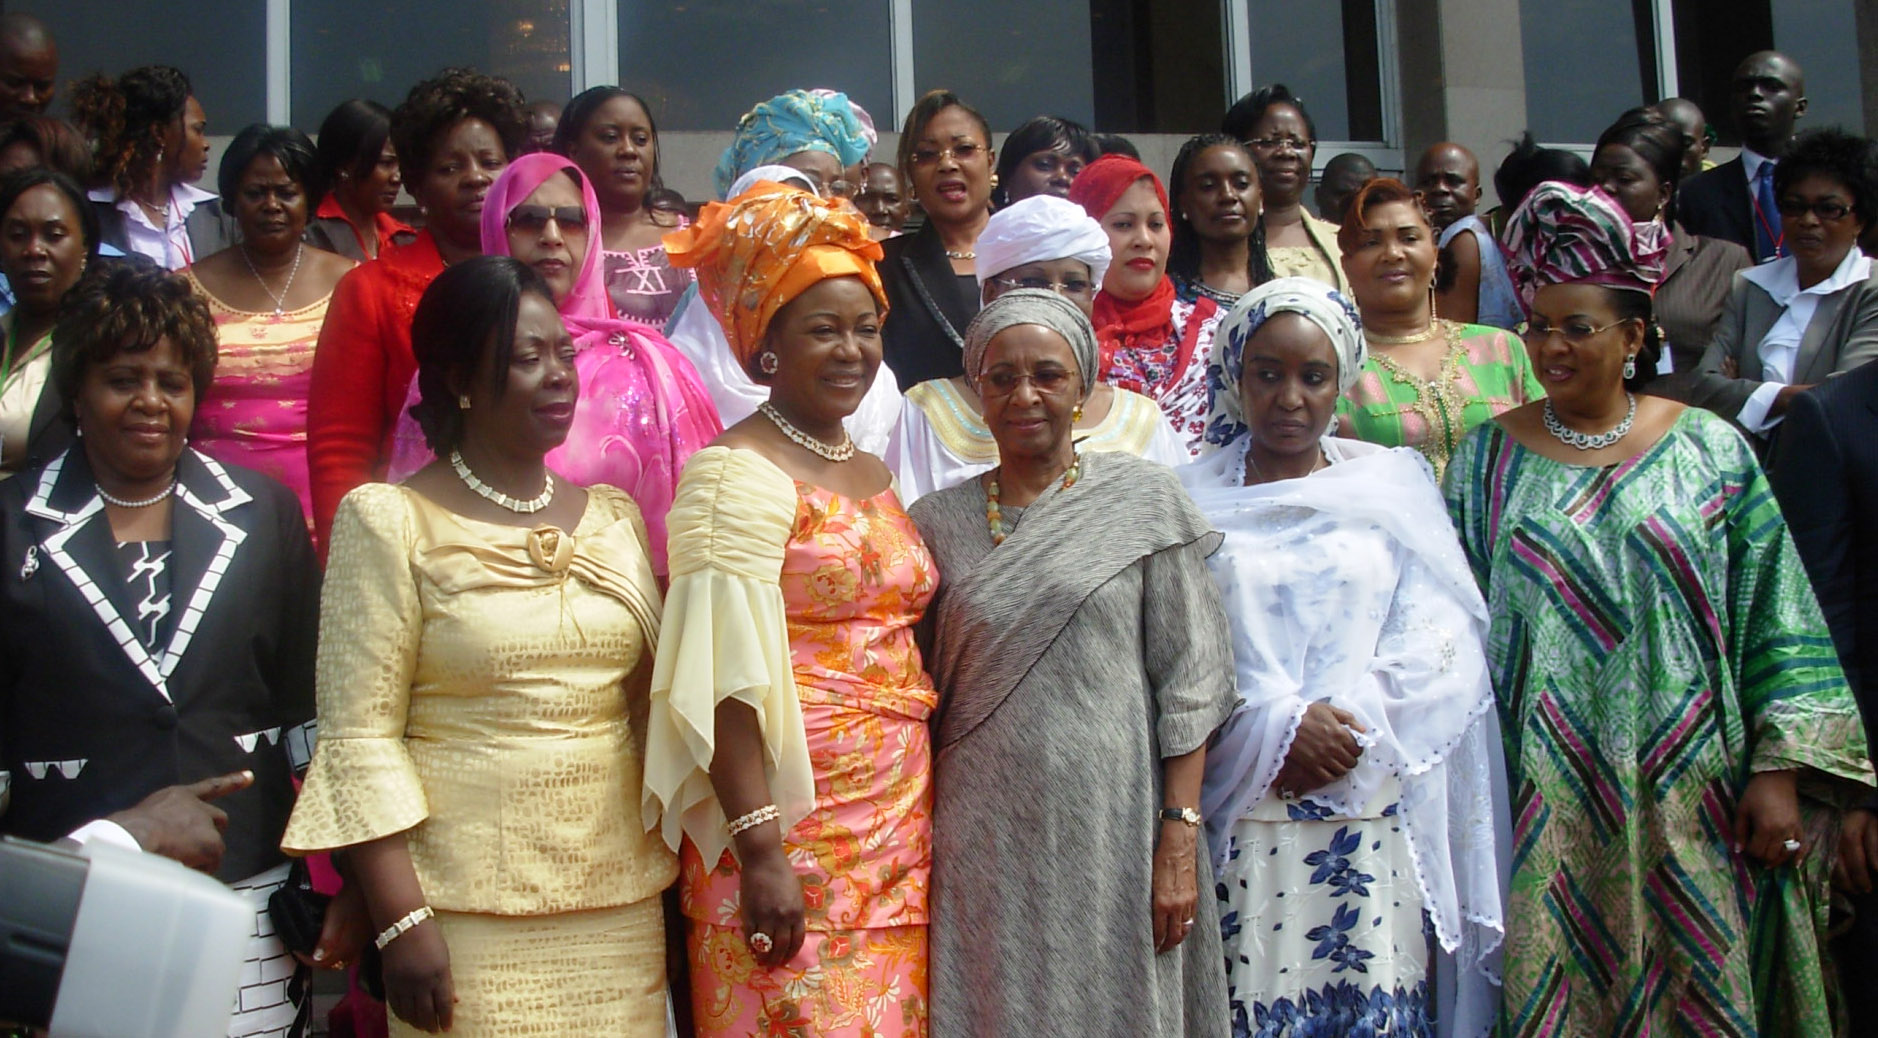 African first ladies pose for a group photo in the capital of the Republic of Congo after attending a conference during which they set up a network of women peace negotiators. Brazzaville. February 2008.